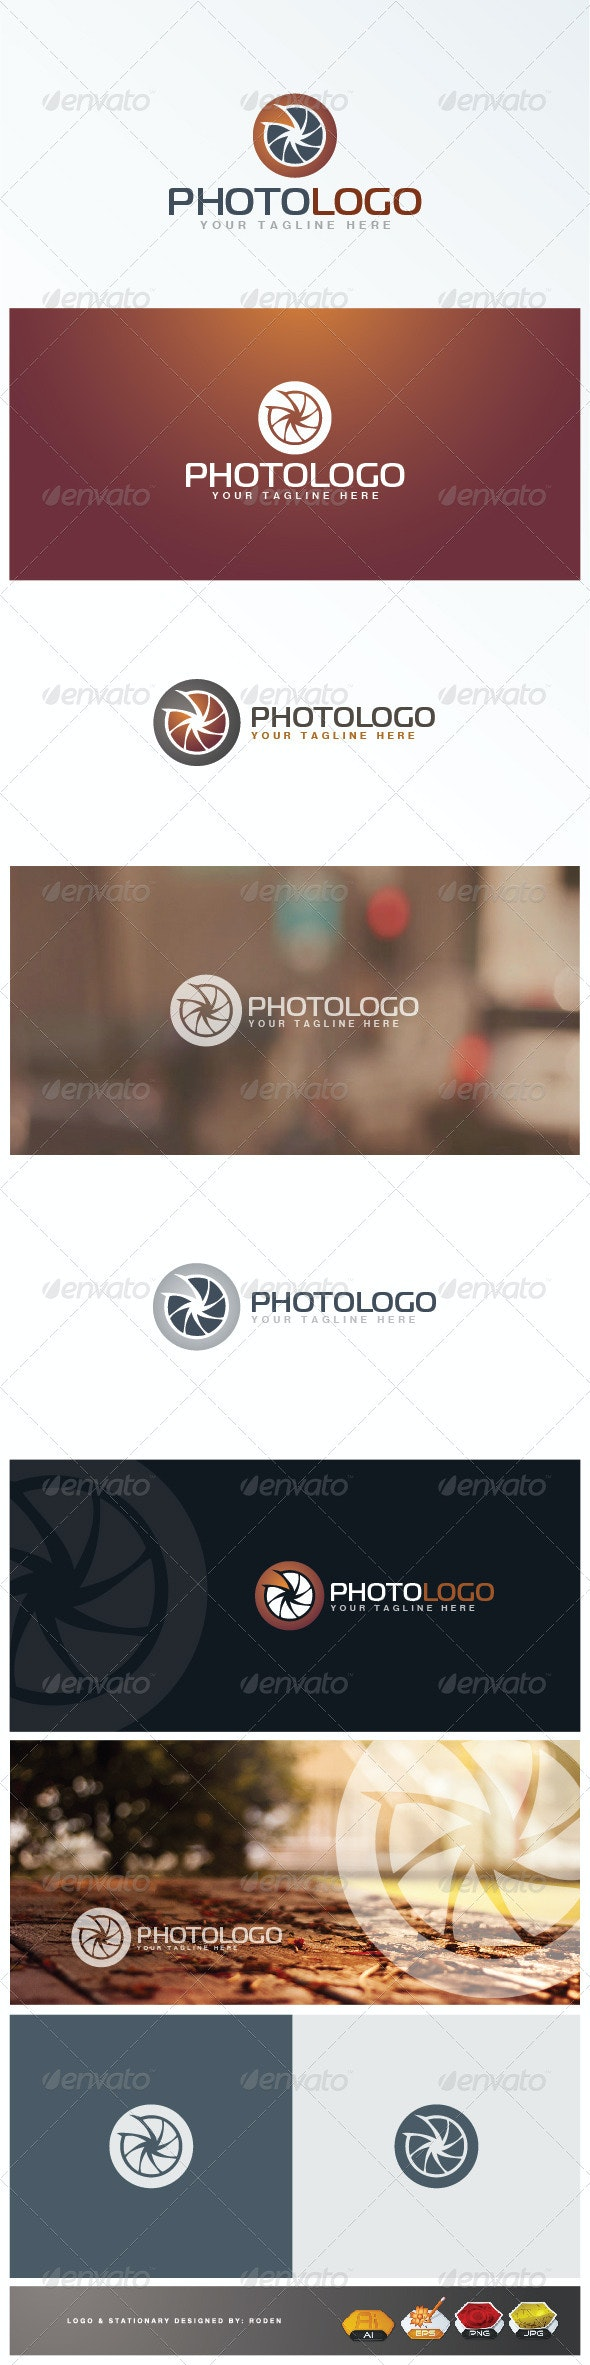 Photo studio logo - Logo Templates